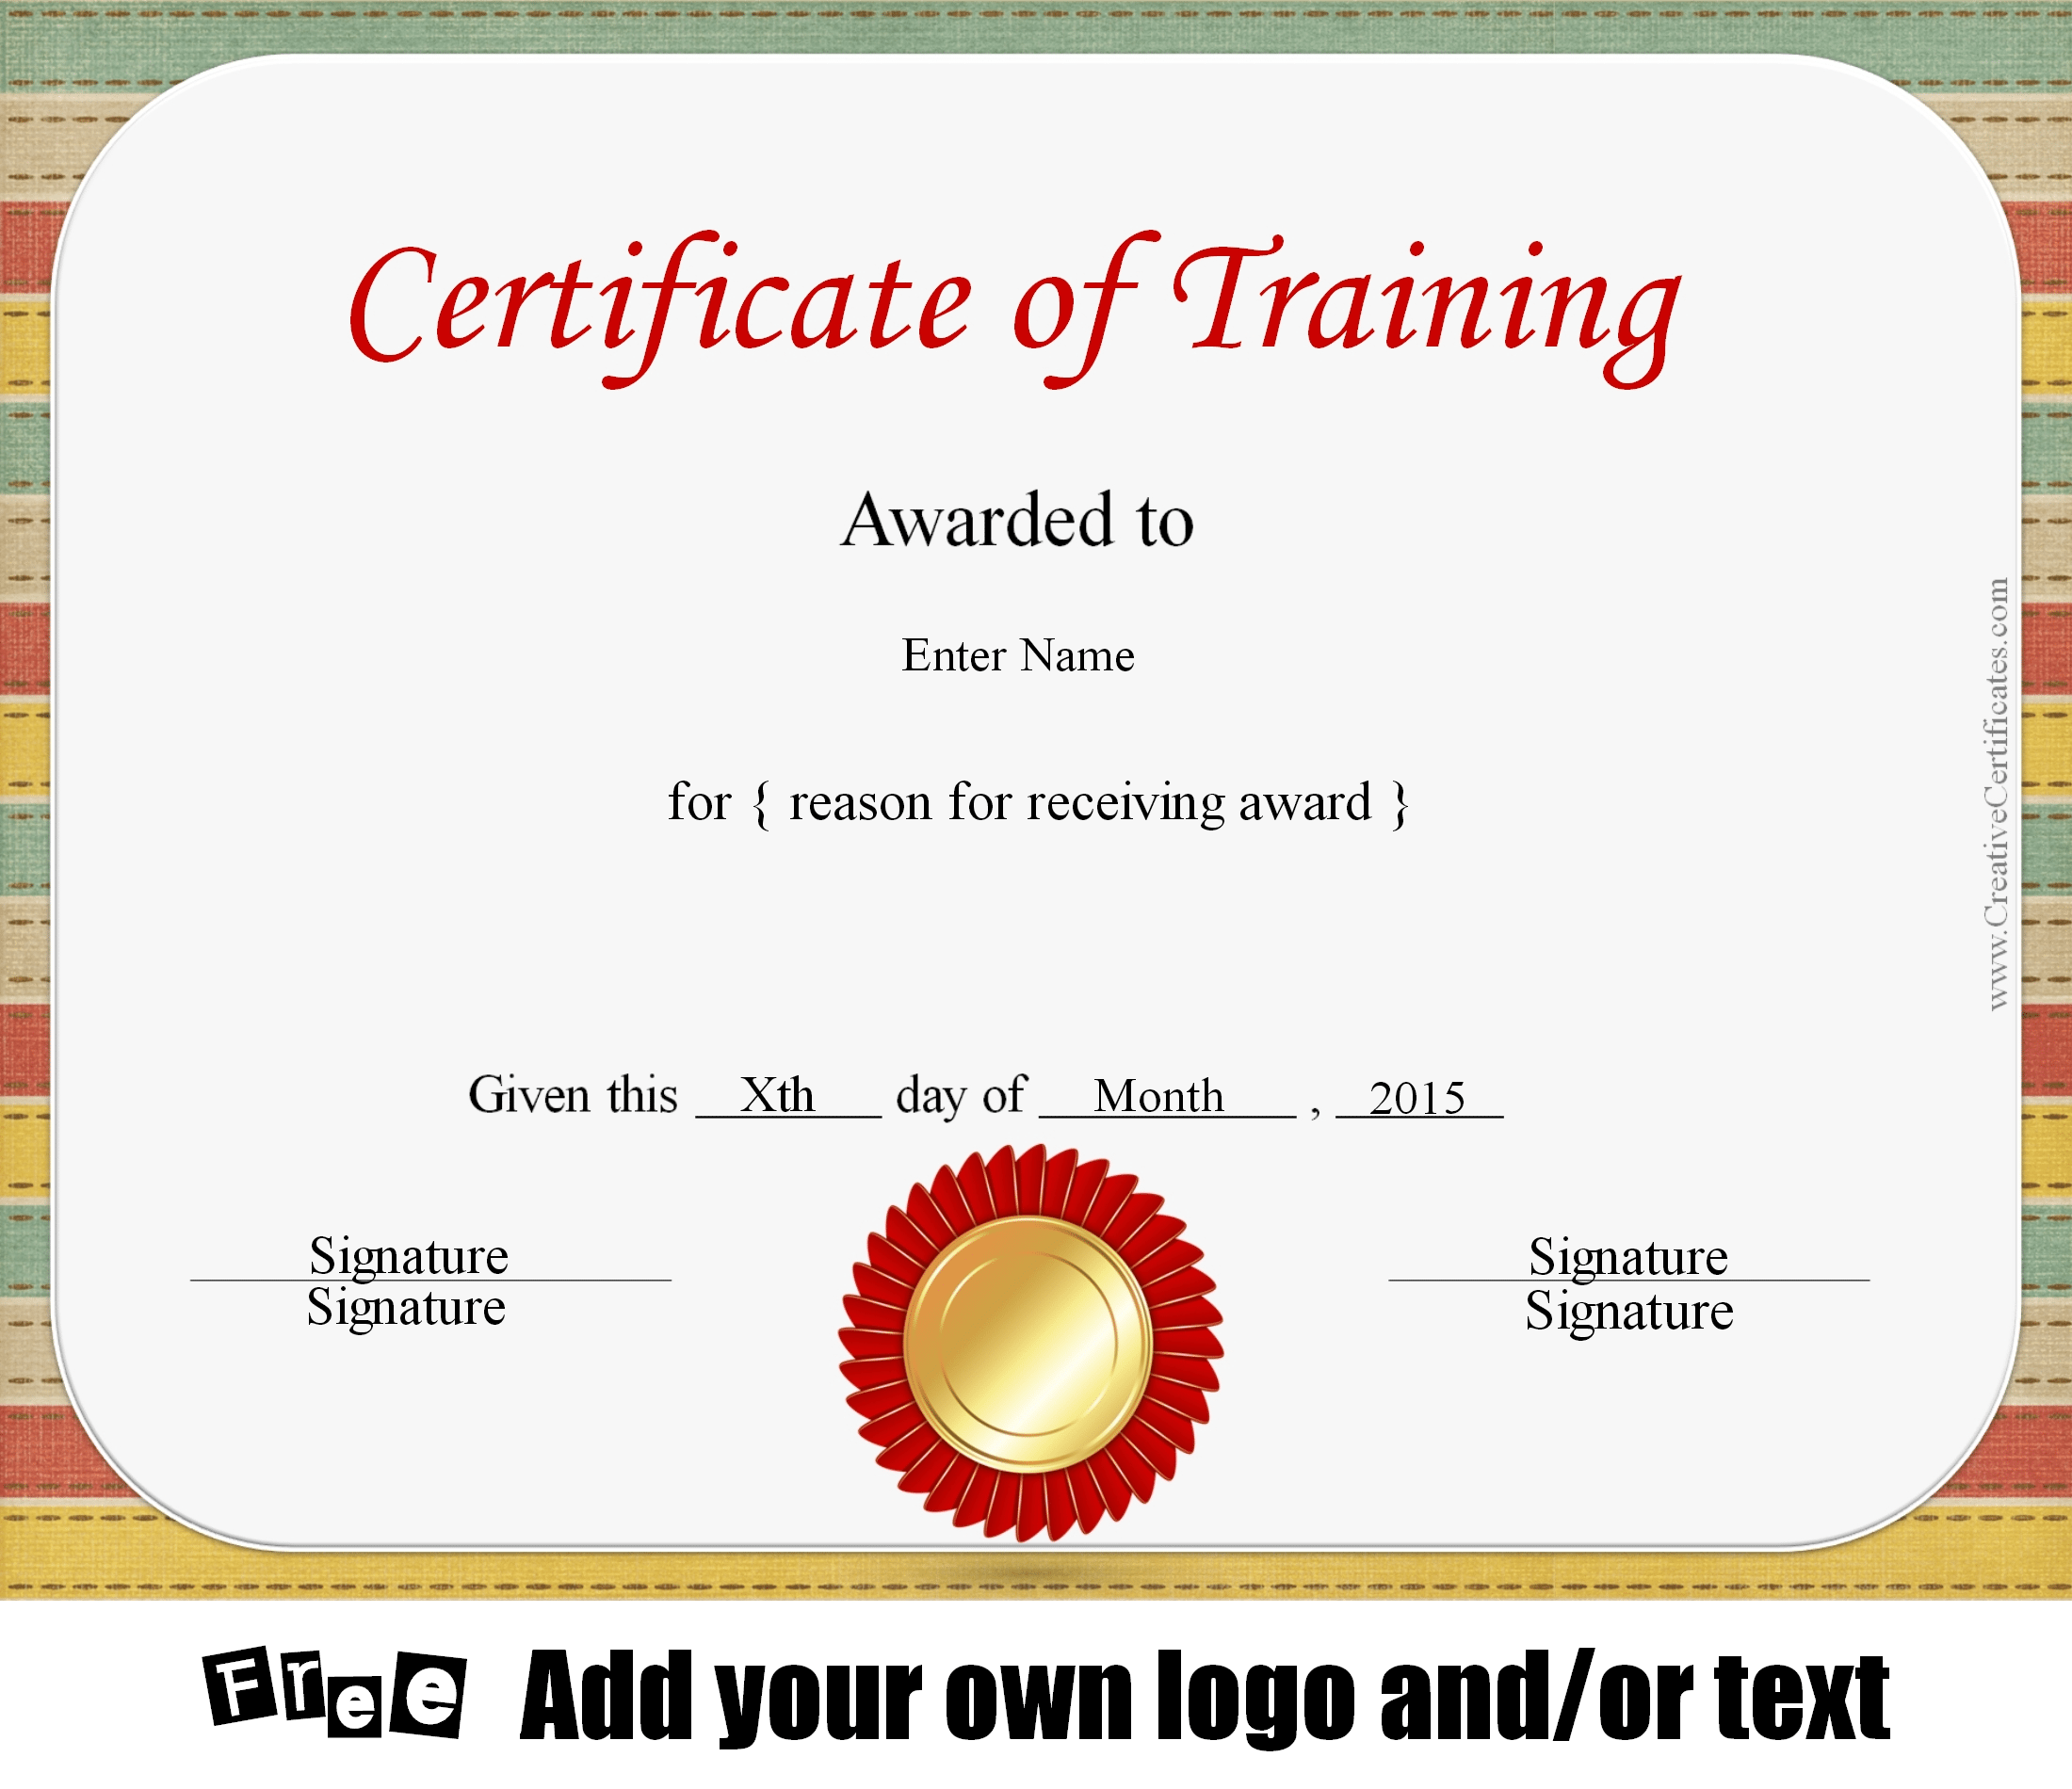 Training Certificate Template U2013 Free Formats Excel Word Welcome To  ESLCertified.com, We Are An Online ESL, TEFL, And TESOL Training Provider.